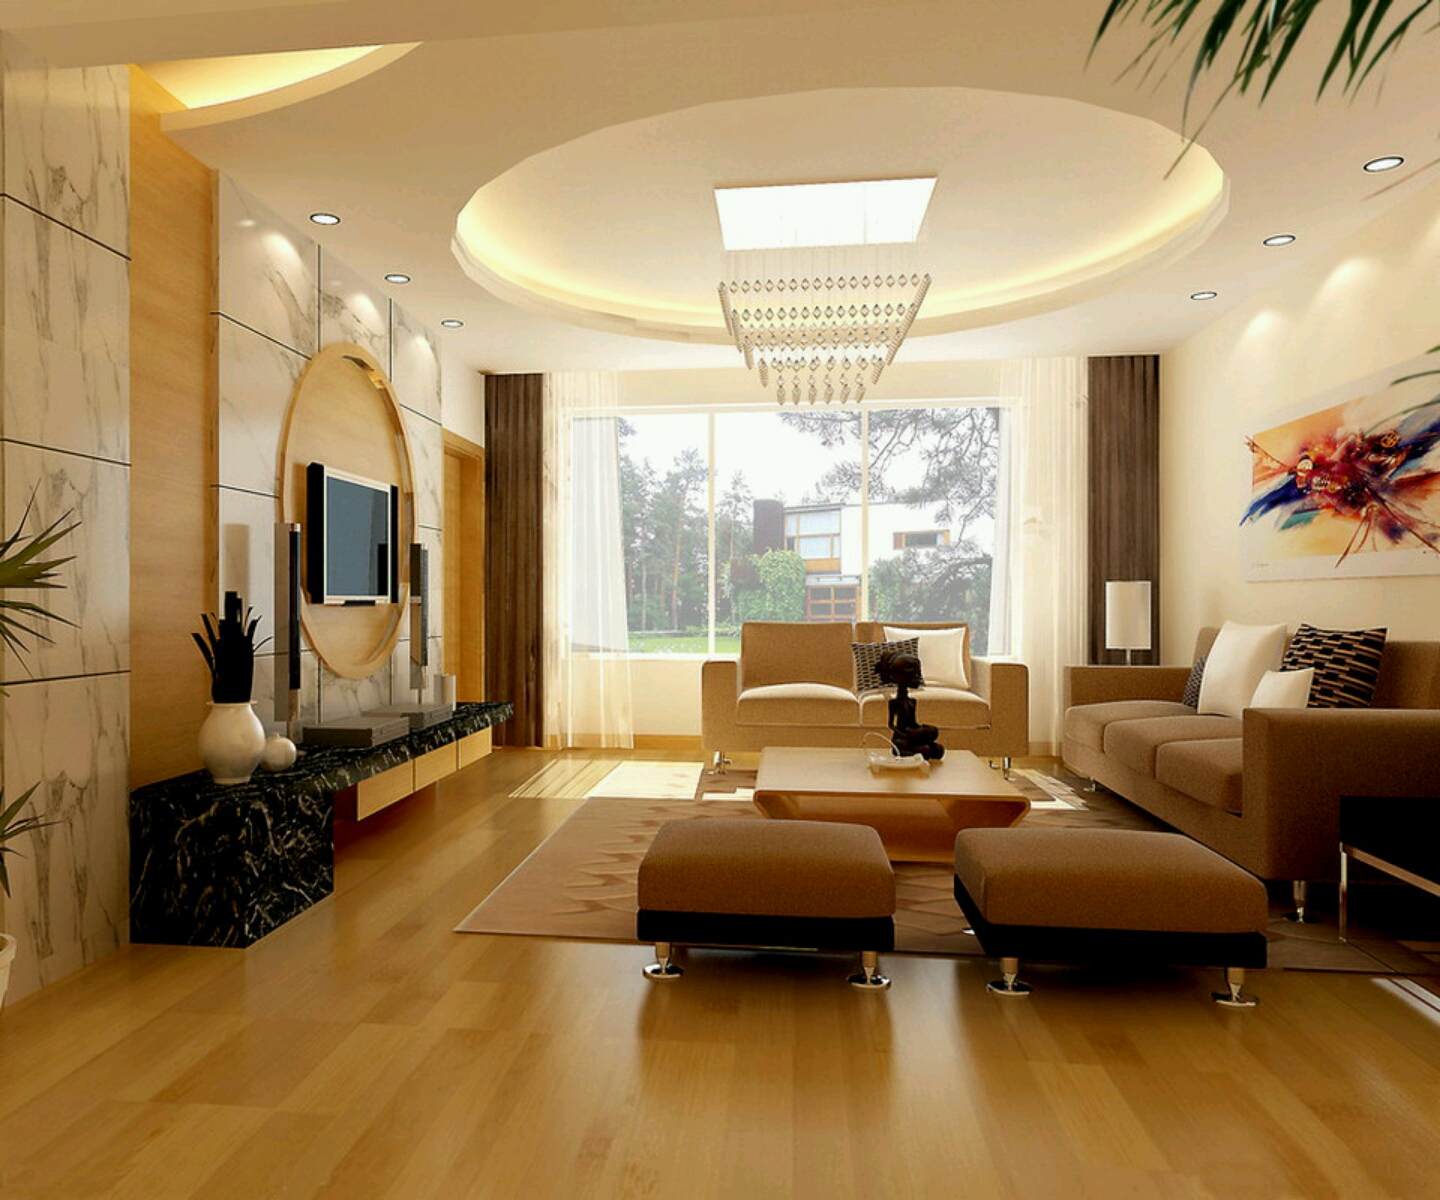 Modern interior decoration living rooms ceiling designs for Interior design lounge room ideas